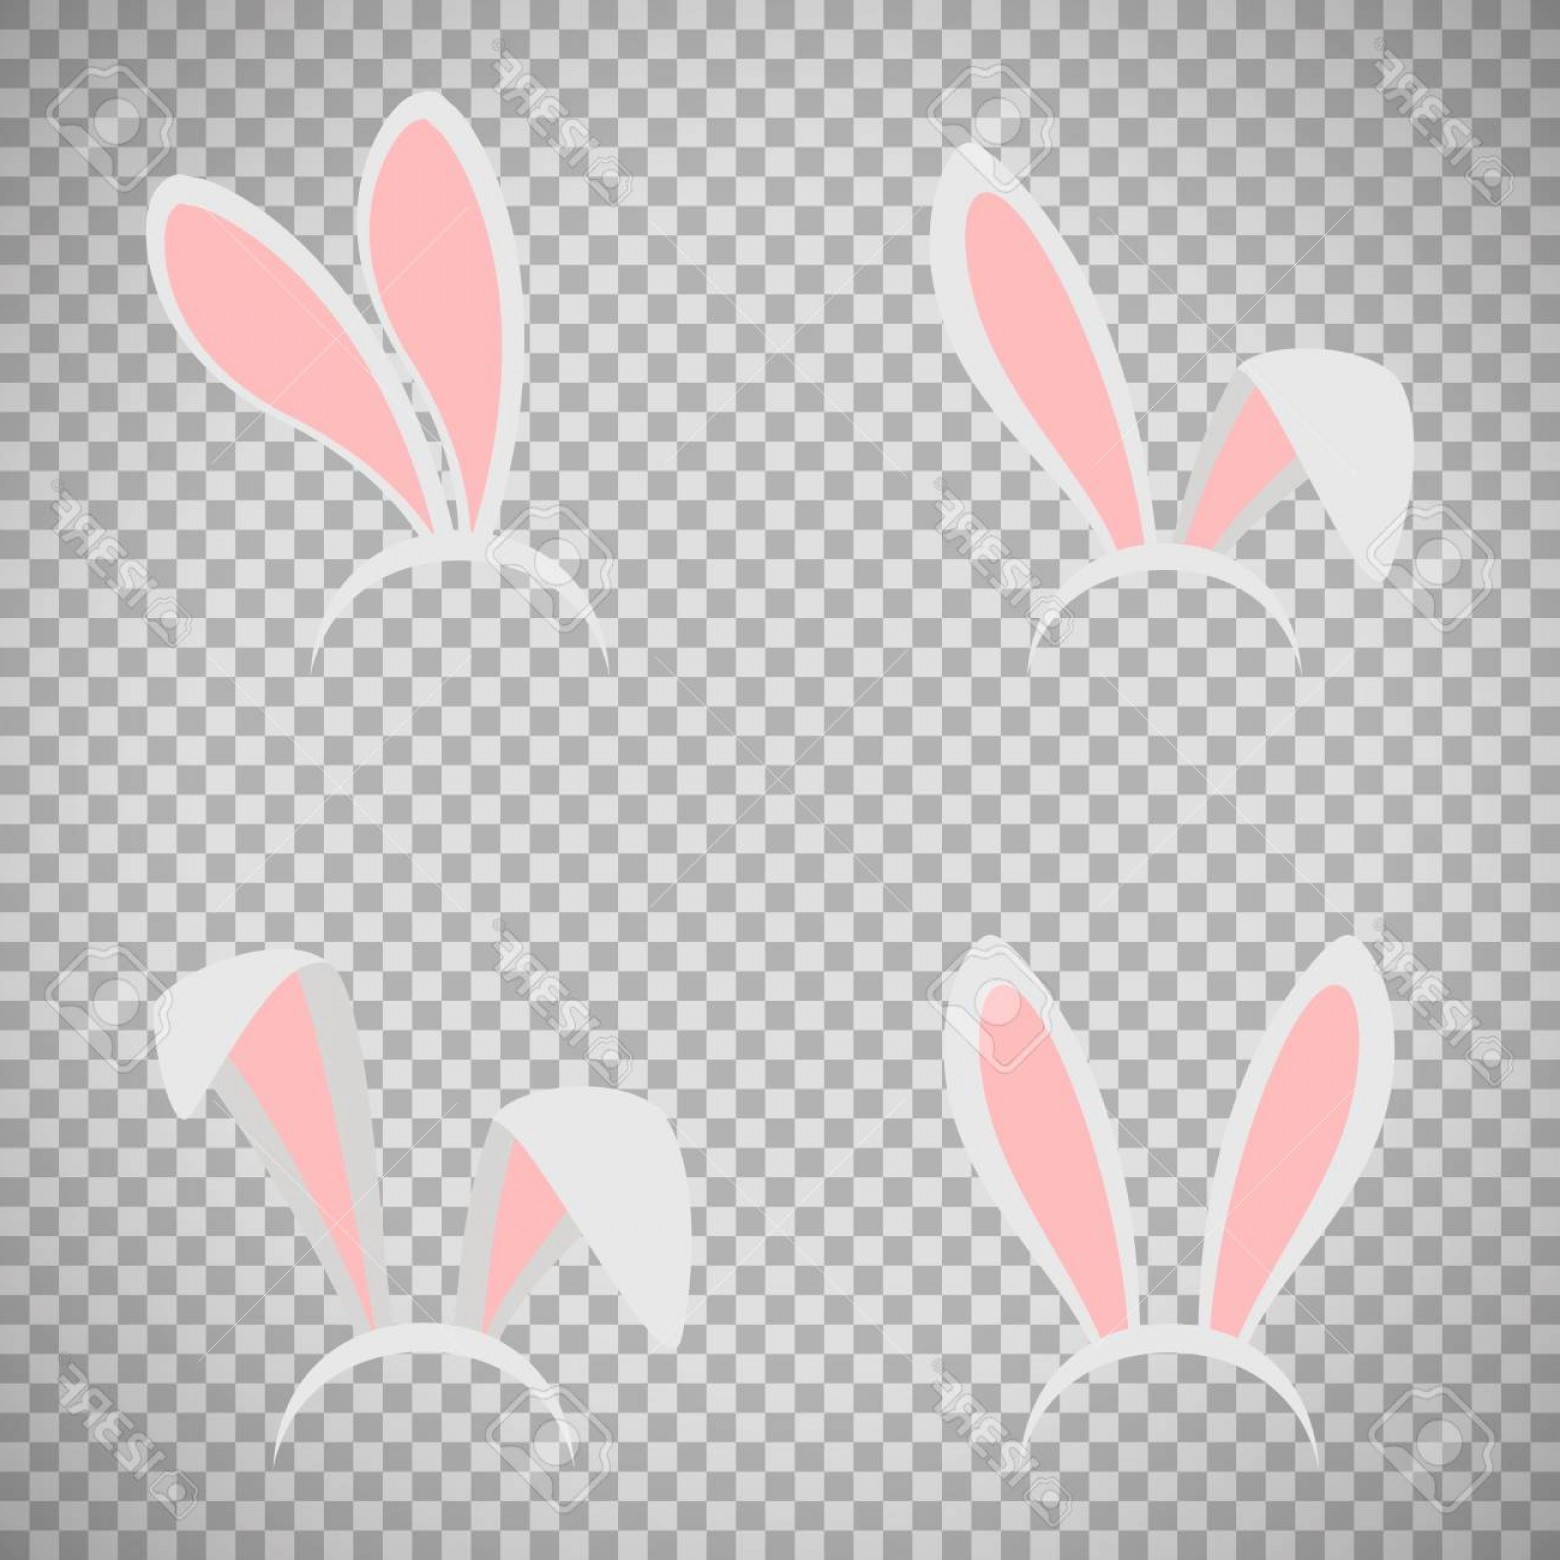 Easter Vector No Background: Photostock Vector Easter Bunny Ears Mask Vector Illustration Ostern Rabbit Ear Spring Hat Set Isolated On Transparent